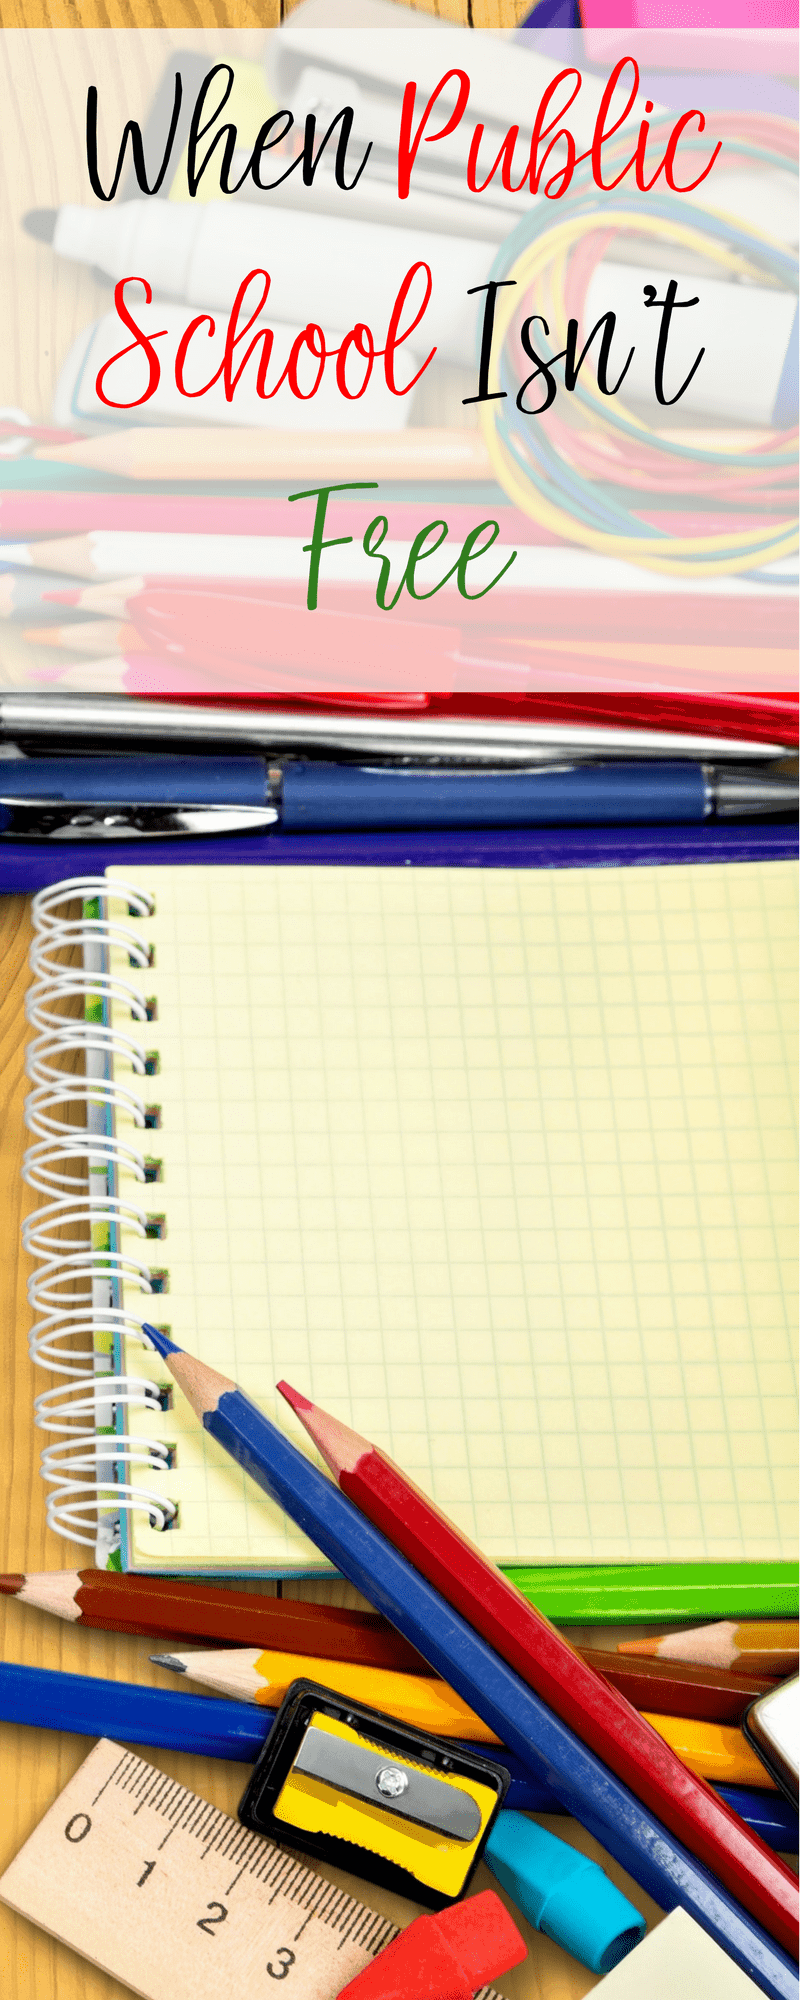 Public school can be surprisingly expensive if you aren't prepared. Here's how to budget for the unexpected expenses of public school.